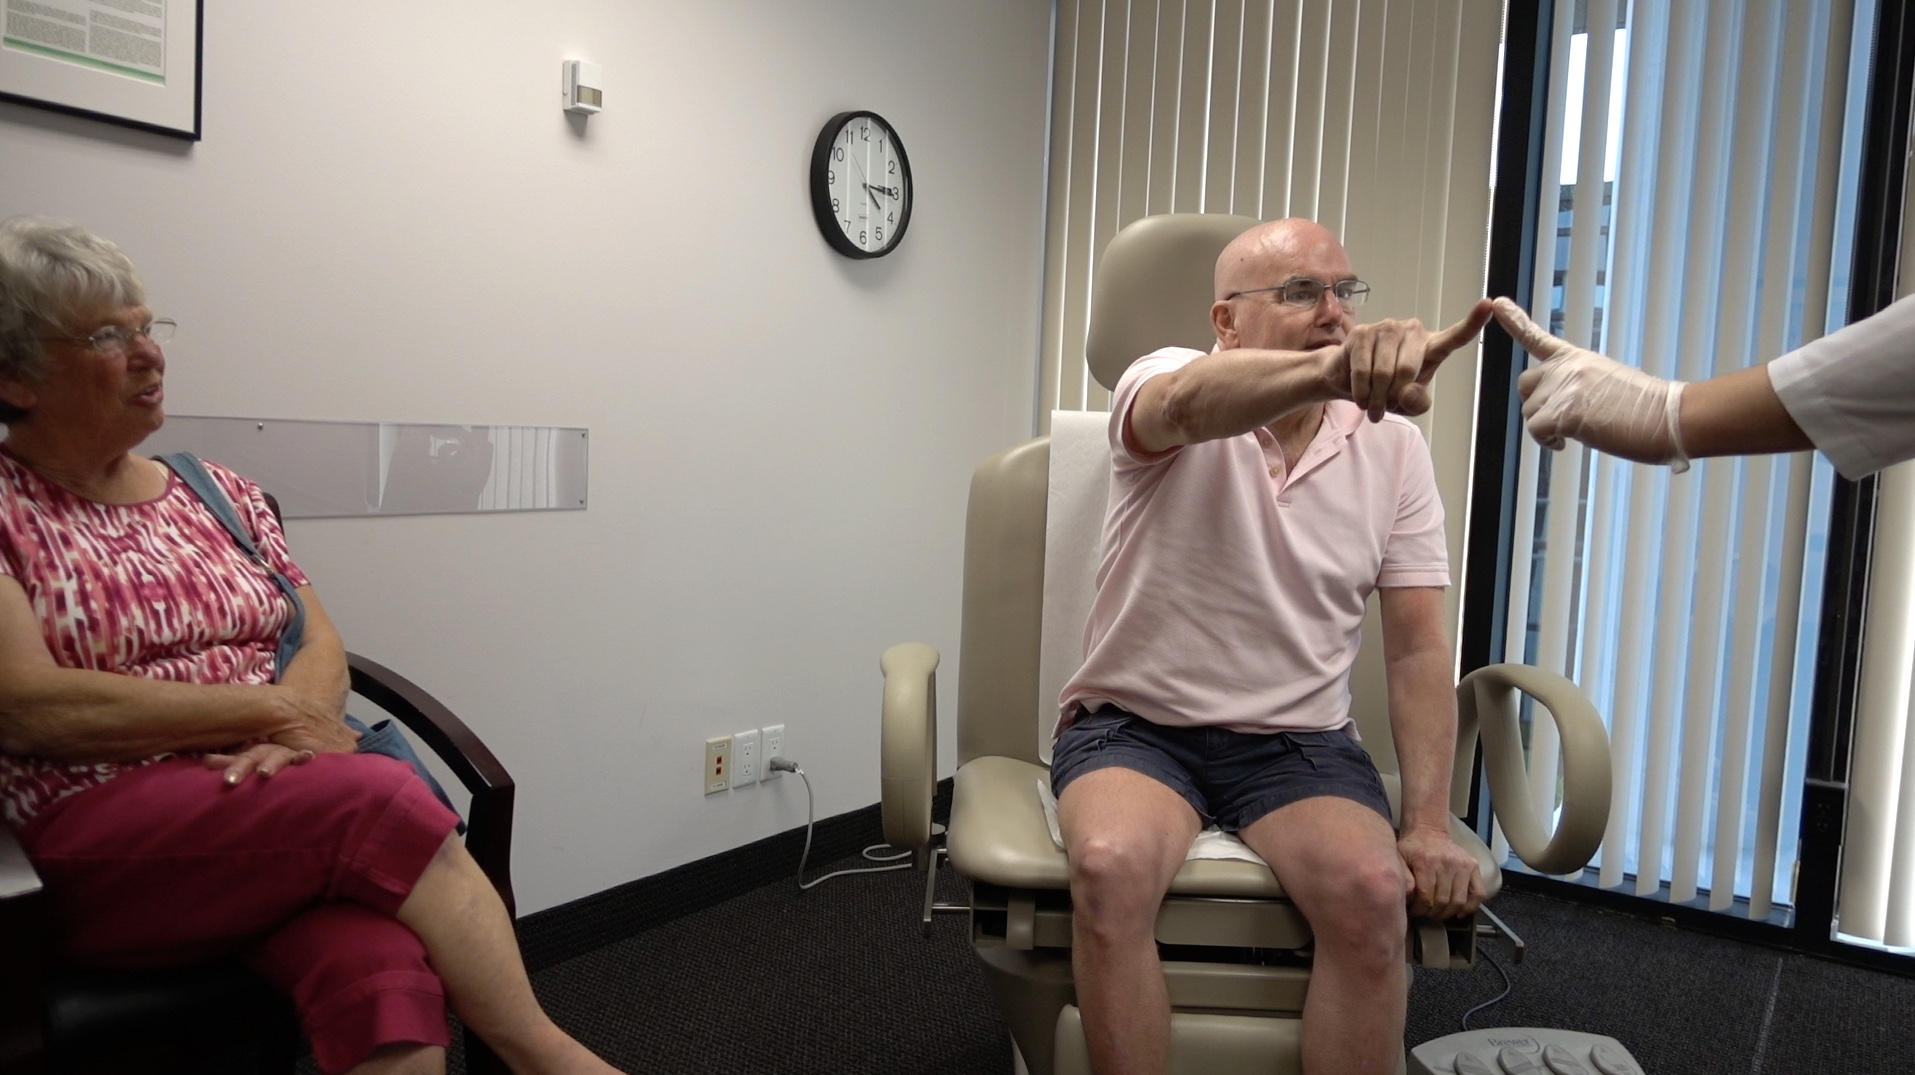 Immediate improvement in hand function, right hemiparesis, balance and hearing: From Maine to the INR, July 2015